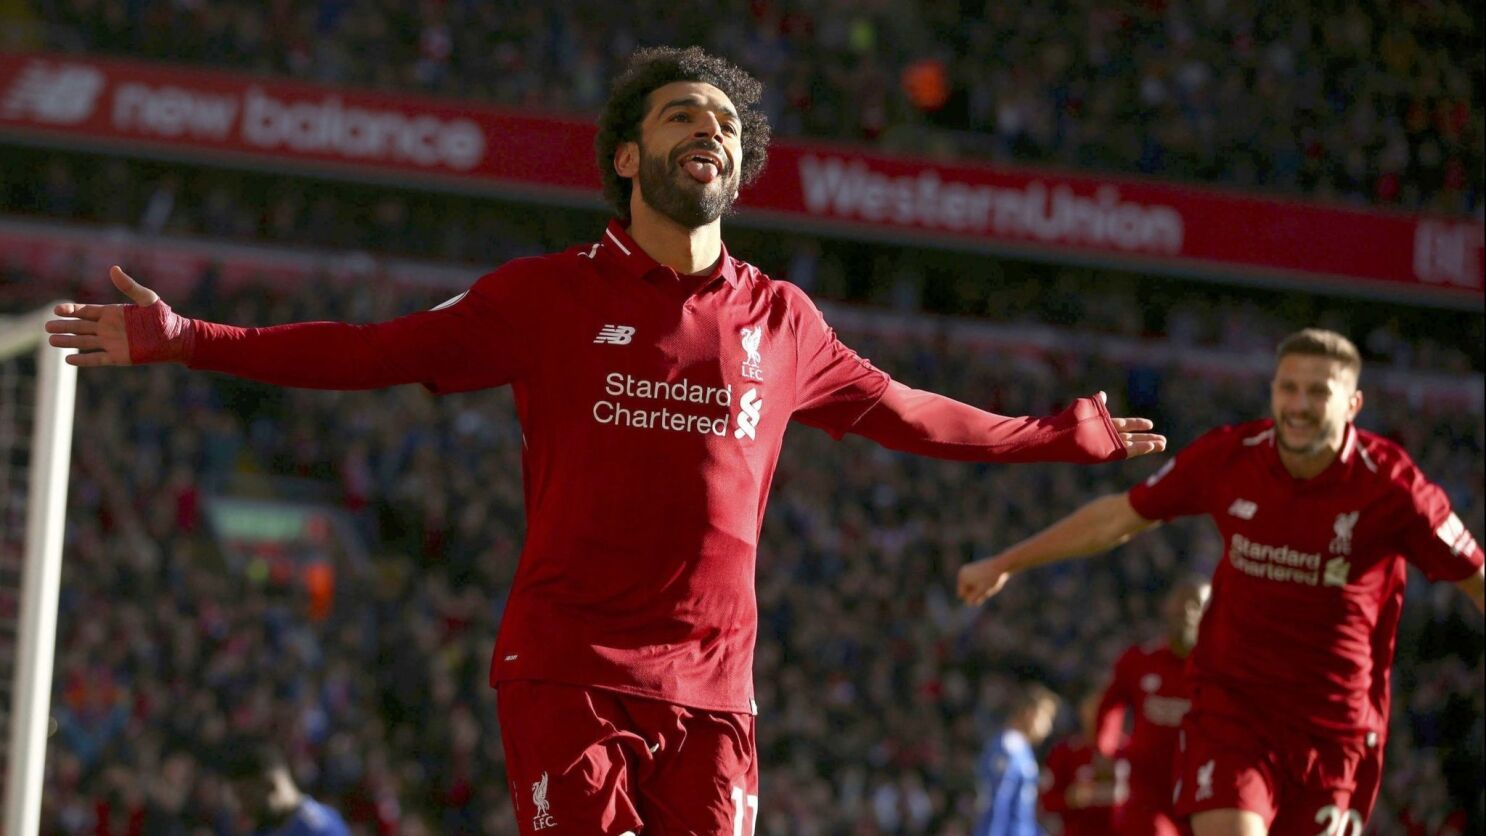 sale retailer 83775 e3d02 Mohamed Salah is the latest soccer star with an ...